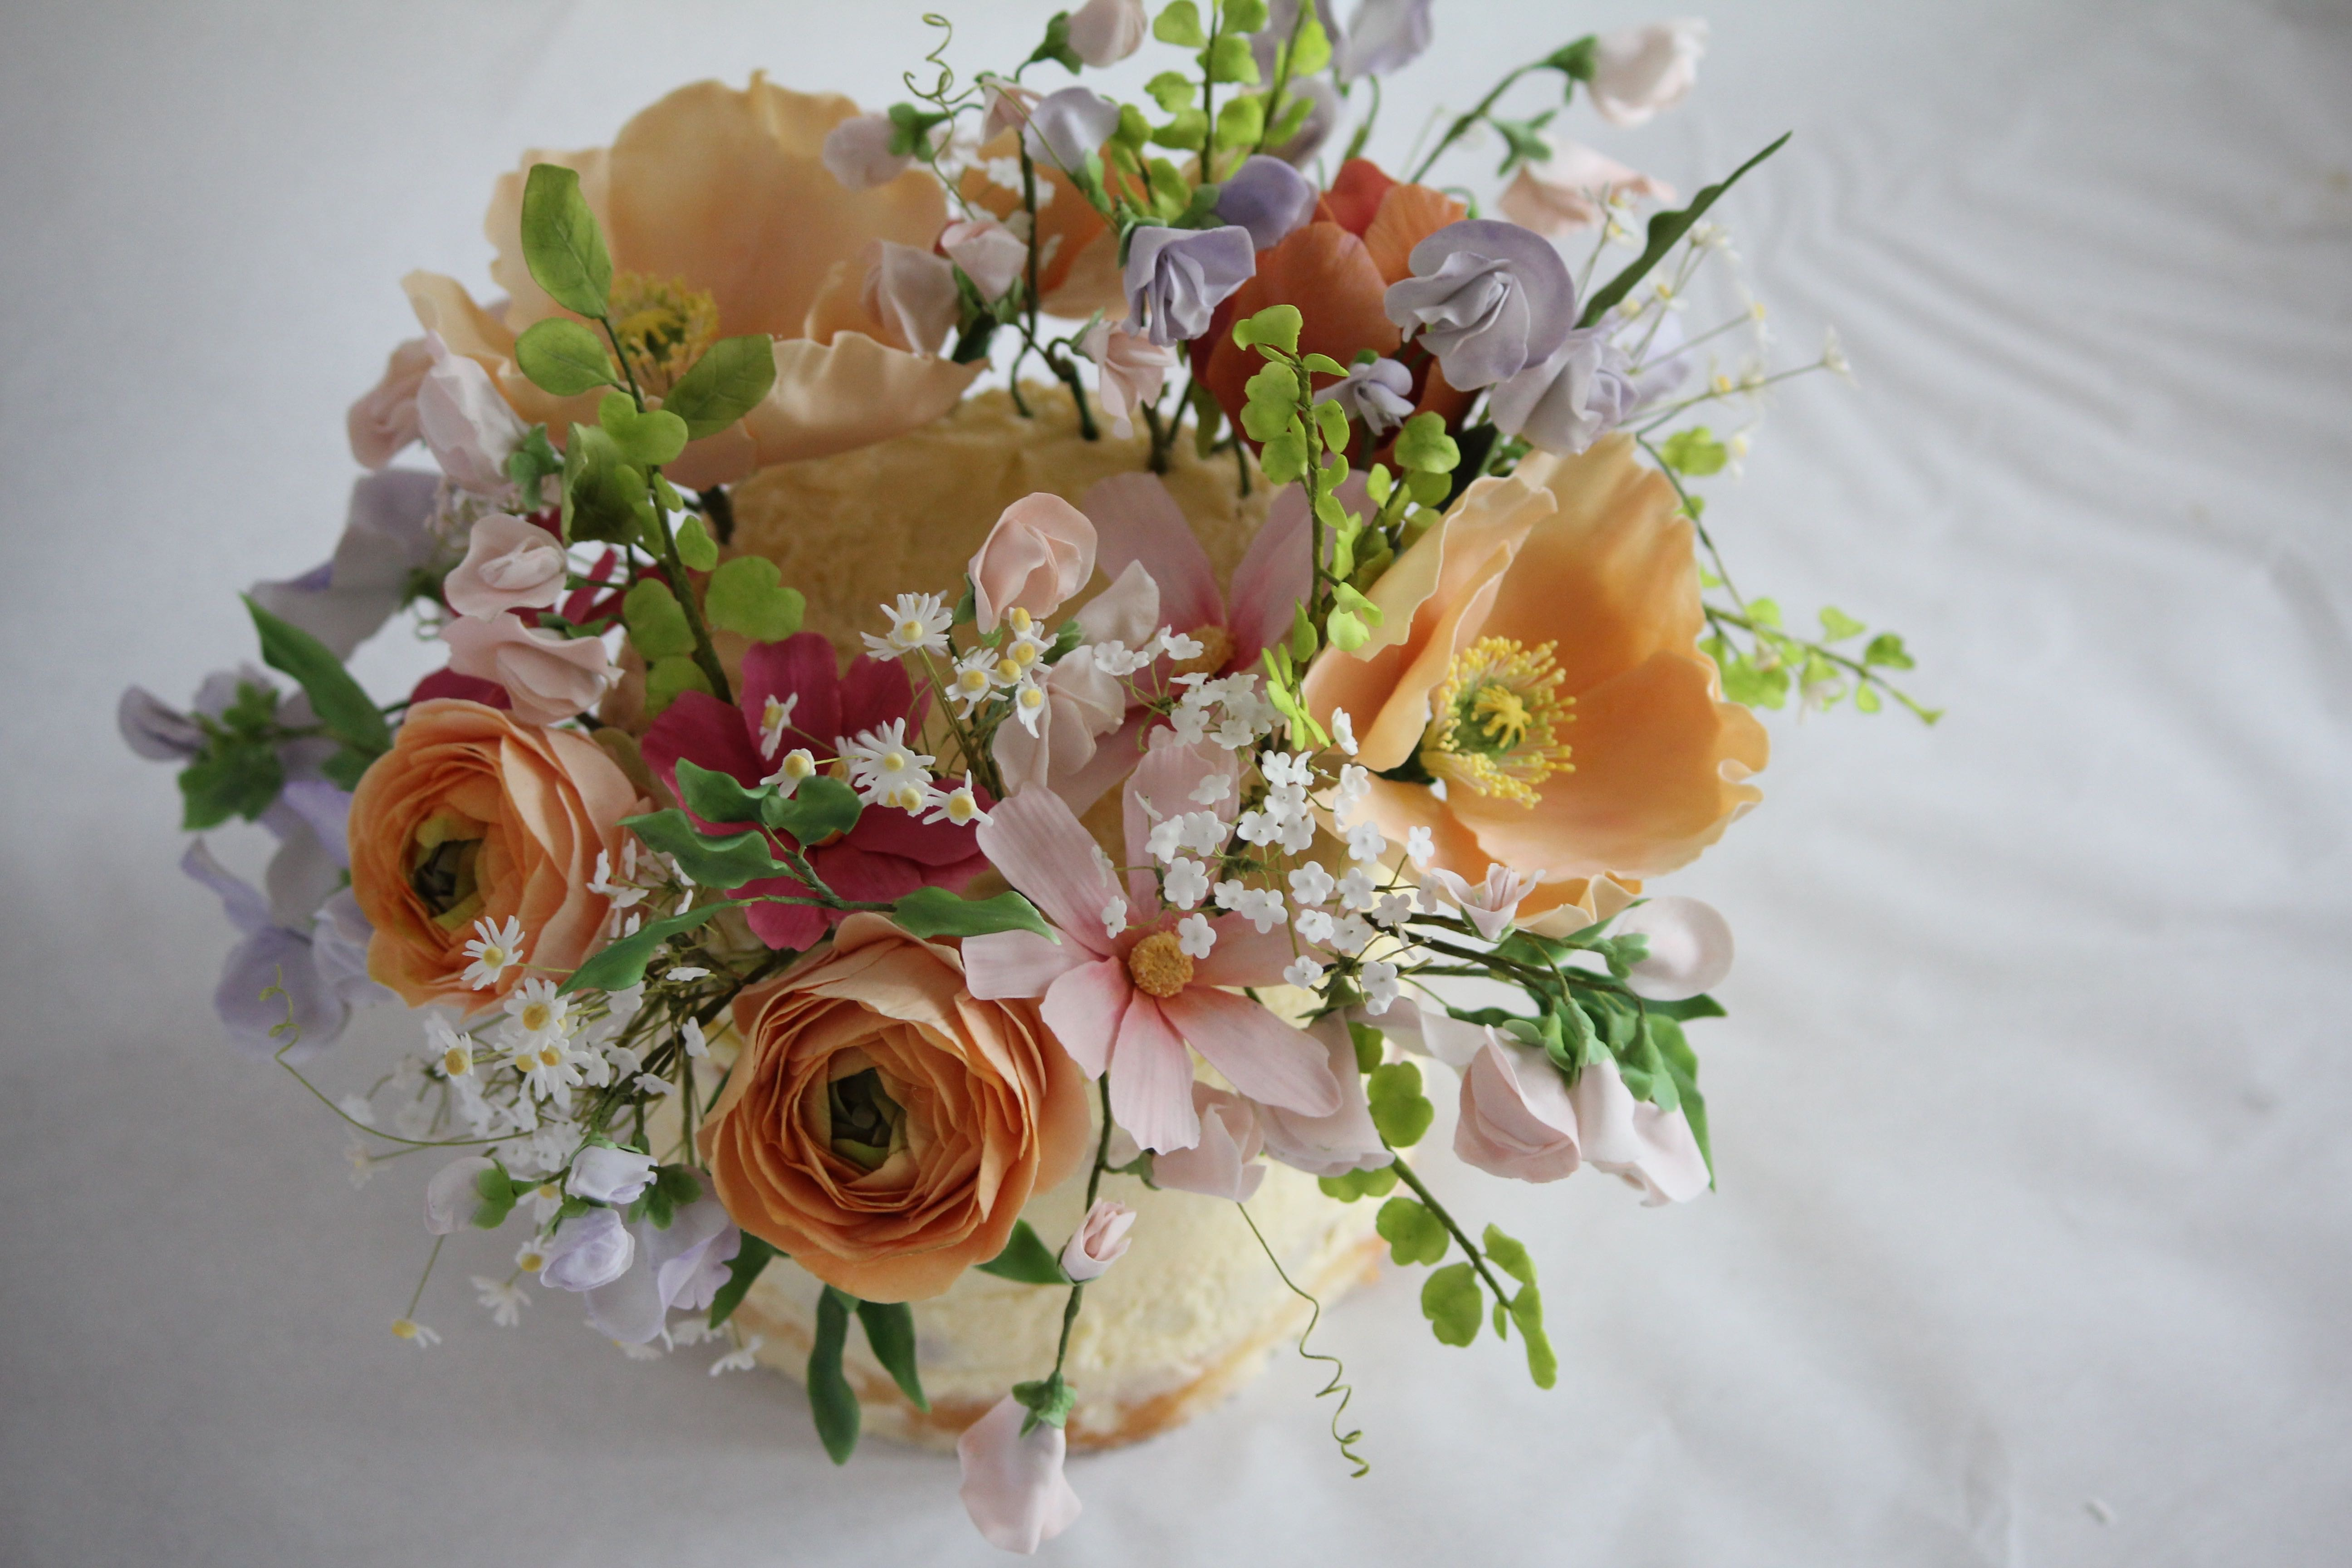 Sugar flower bouquet with peonies and poppies